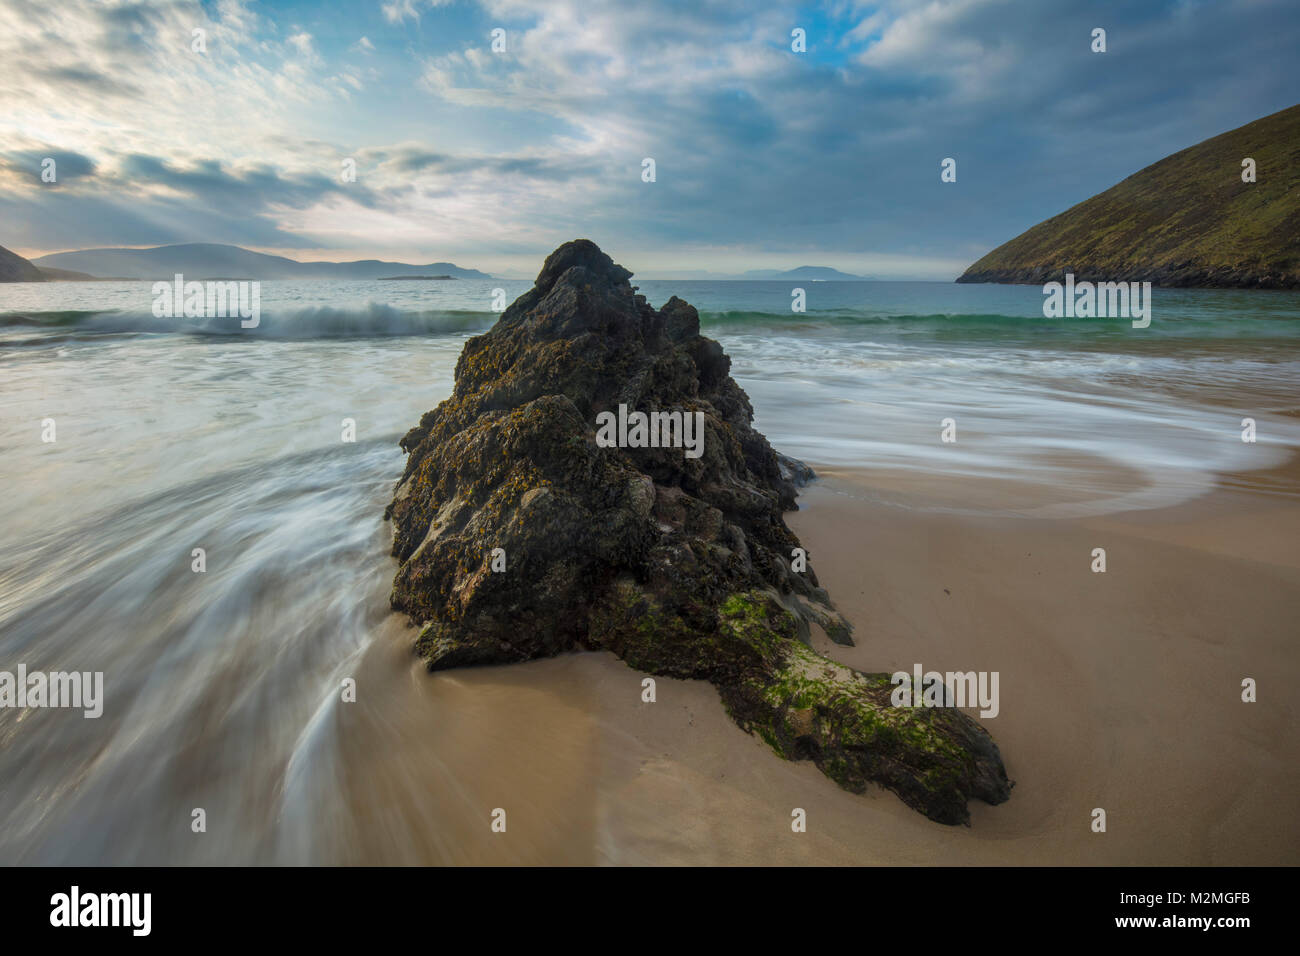 Waves and boulder on Keem Beach, Achill Island, County Mayo, Ireland. Stock Photo